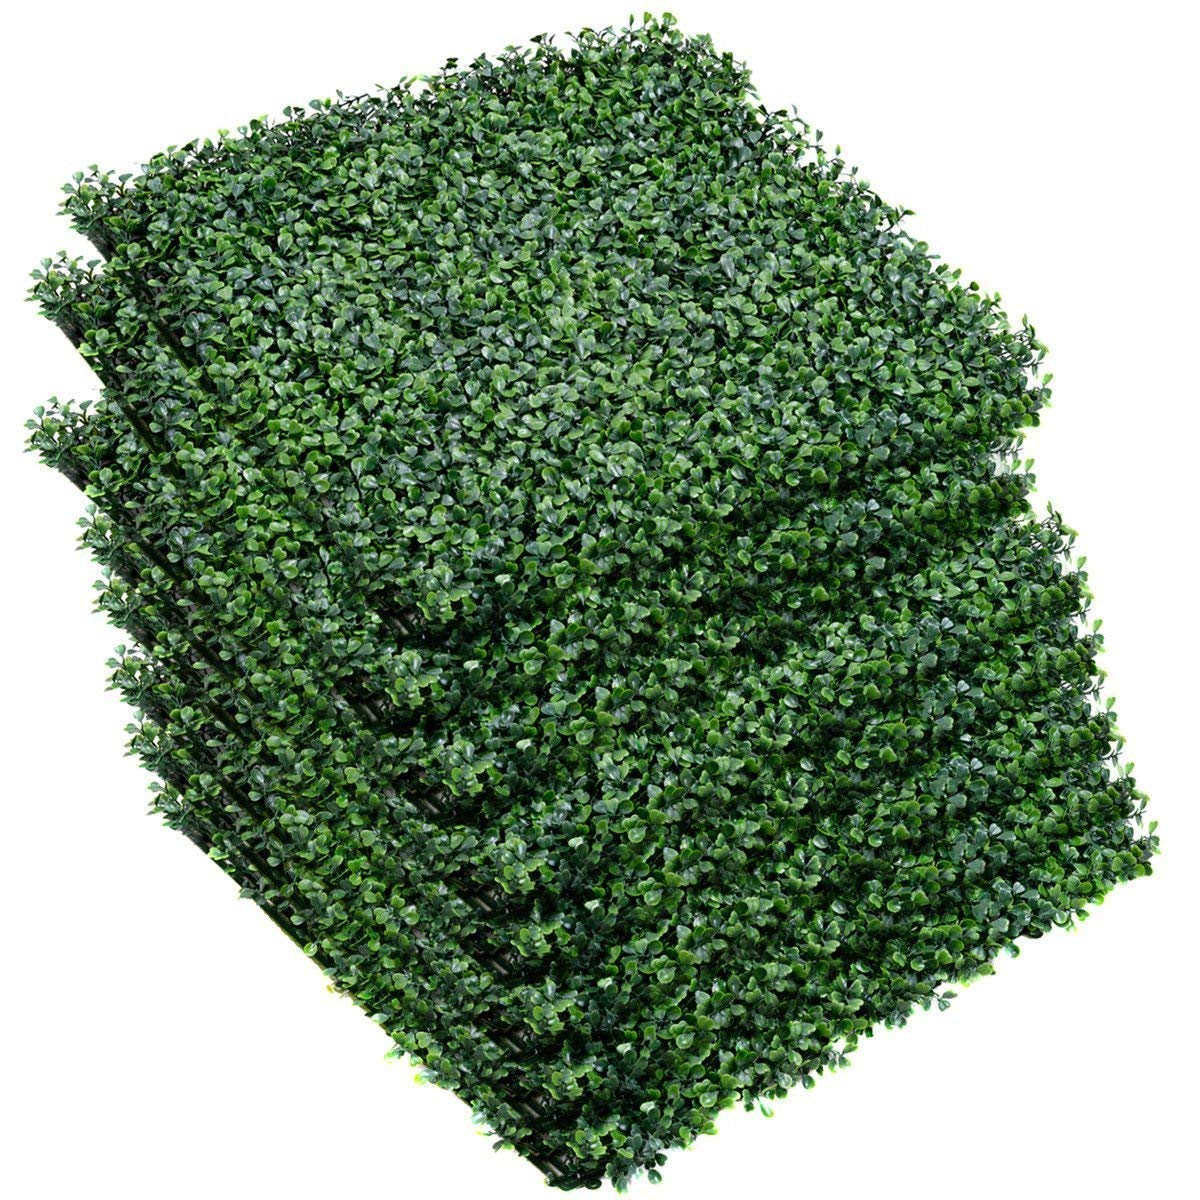 Giantex Artificial Privacy Fence Screen Boxwood Milan Leaf Grass Hedge Panels Mat Indoor Outdoor Topiary Decorative Fake Plant Wall 20''x20'' (12 Pcs) Boxwood Panels